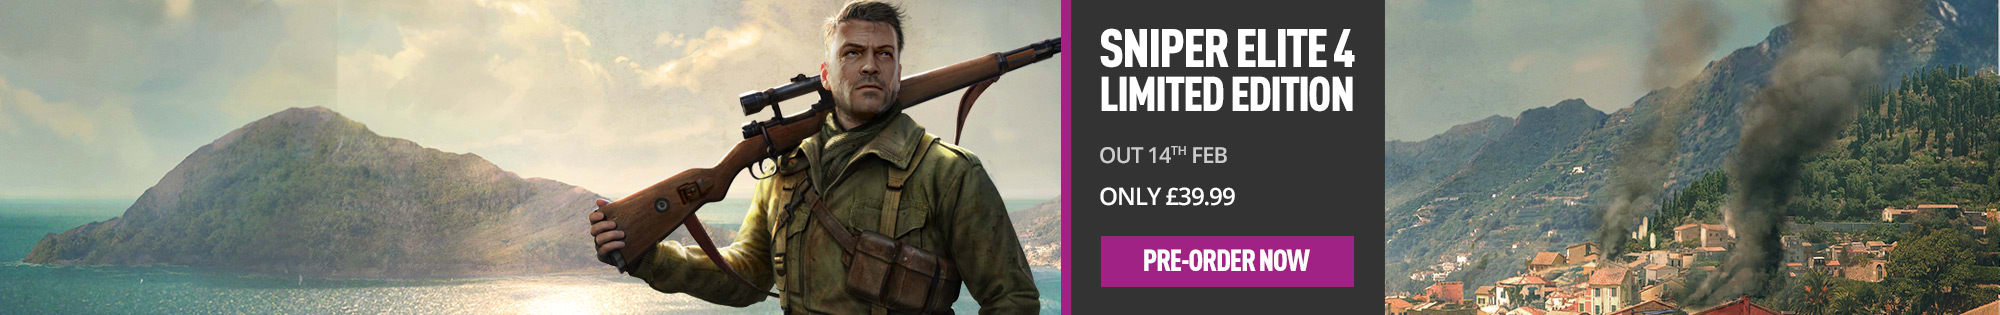 Sniper Elite 4 for Xbox One and PS4 - Pre-order Now at GAME.co.uk!